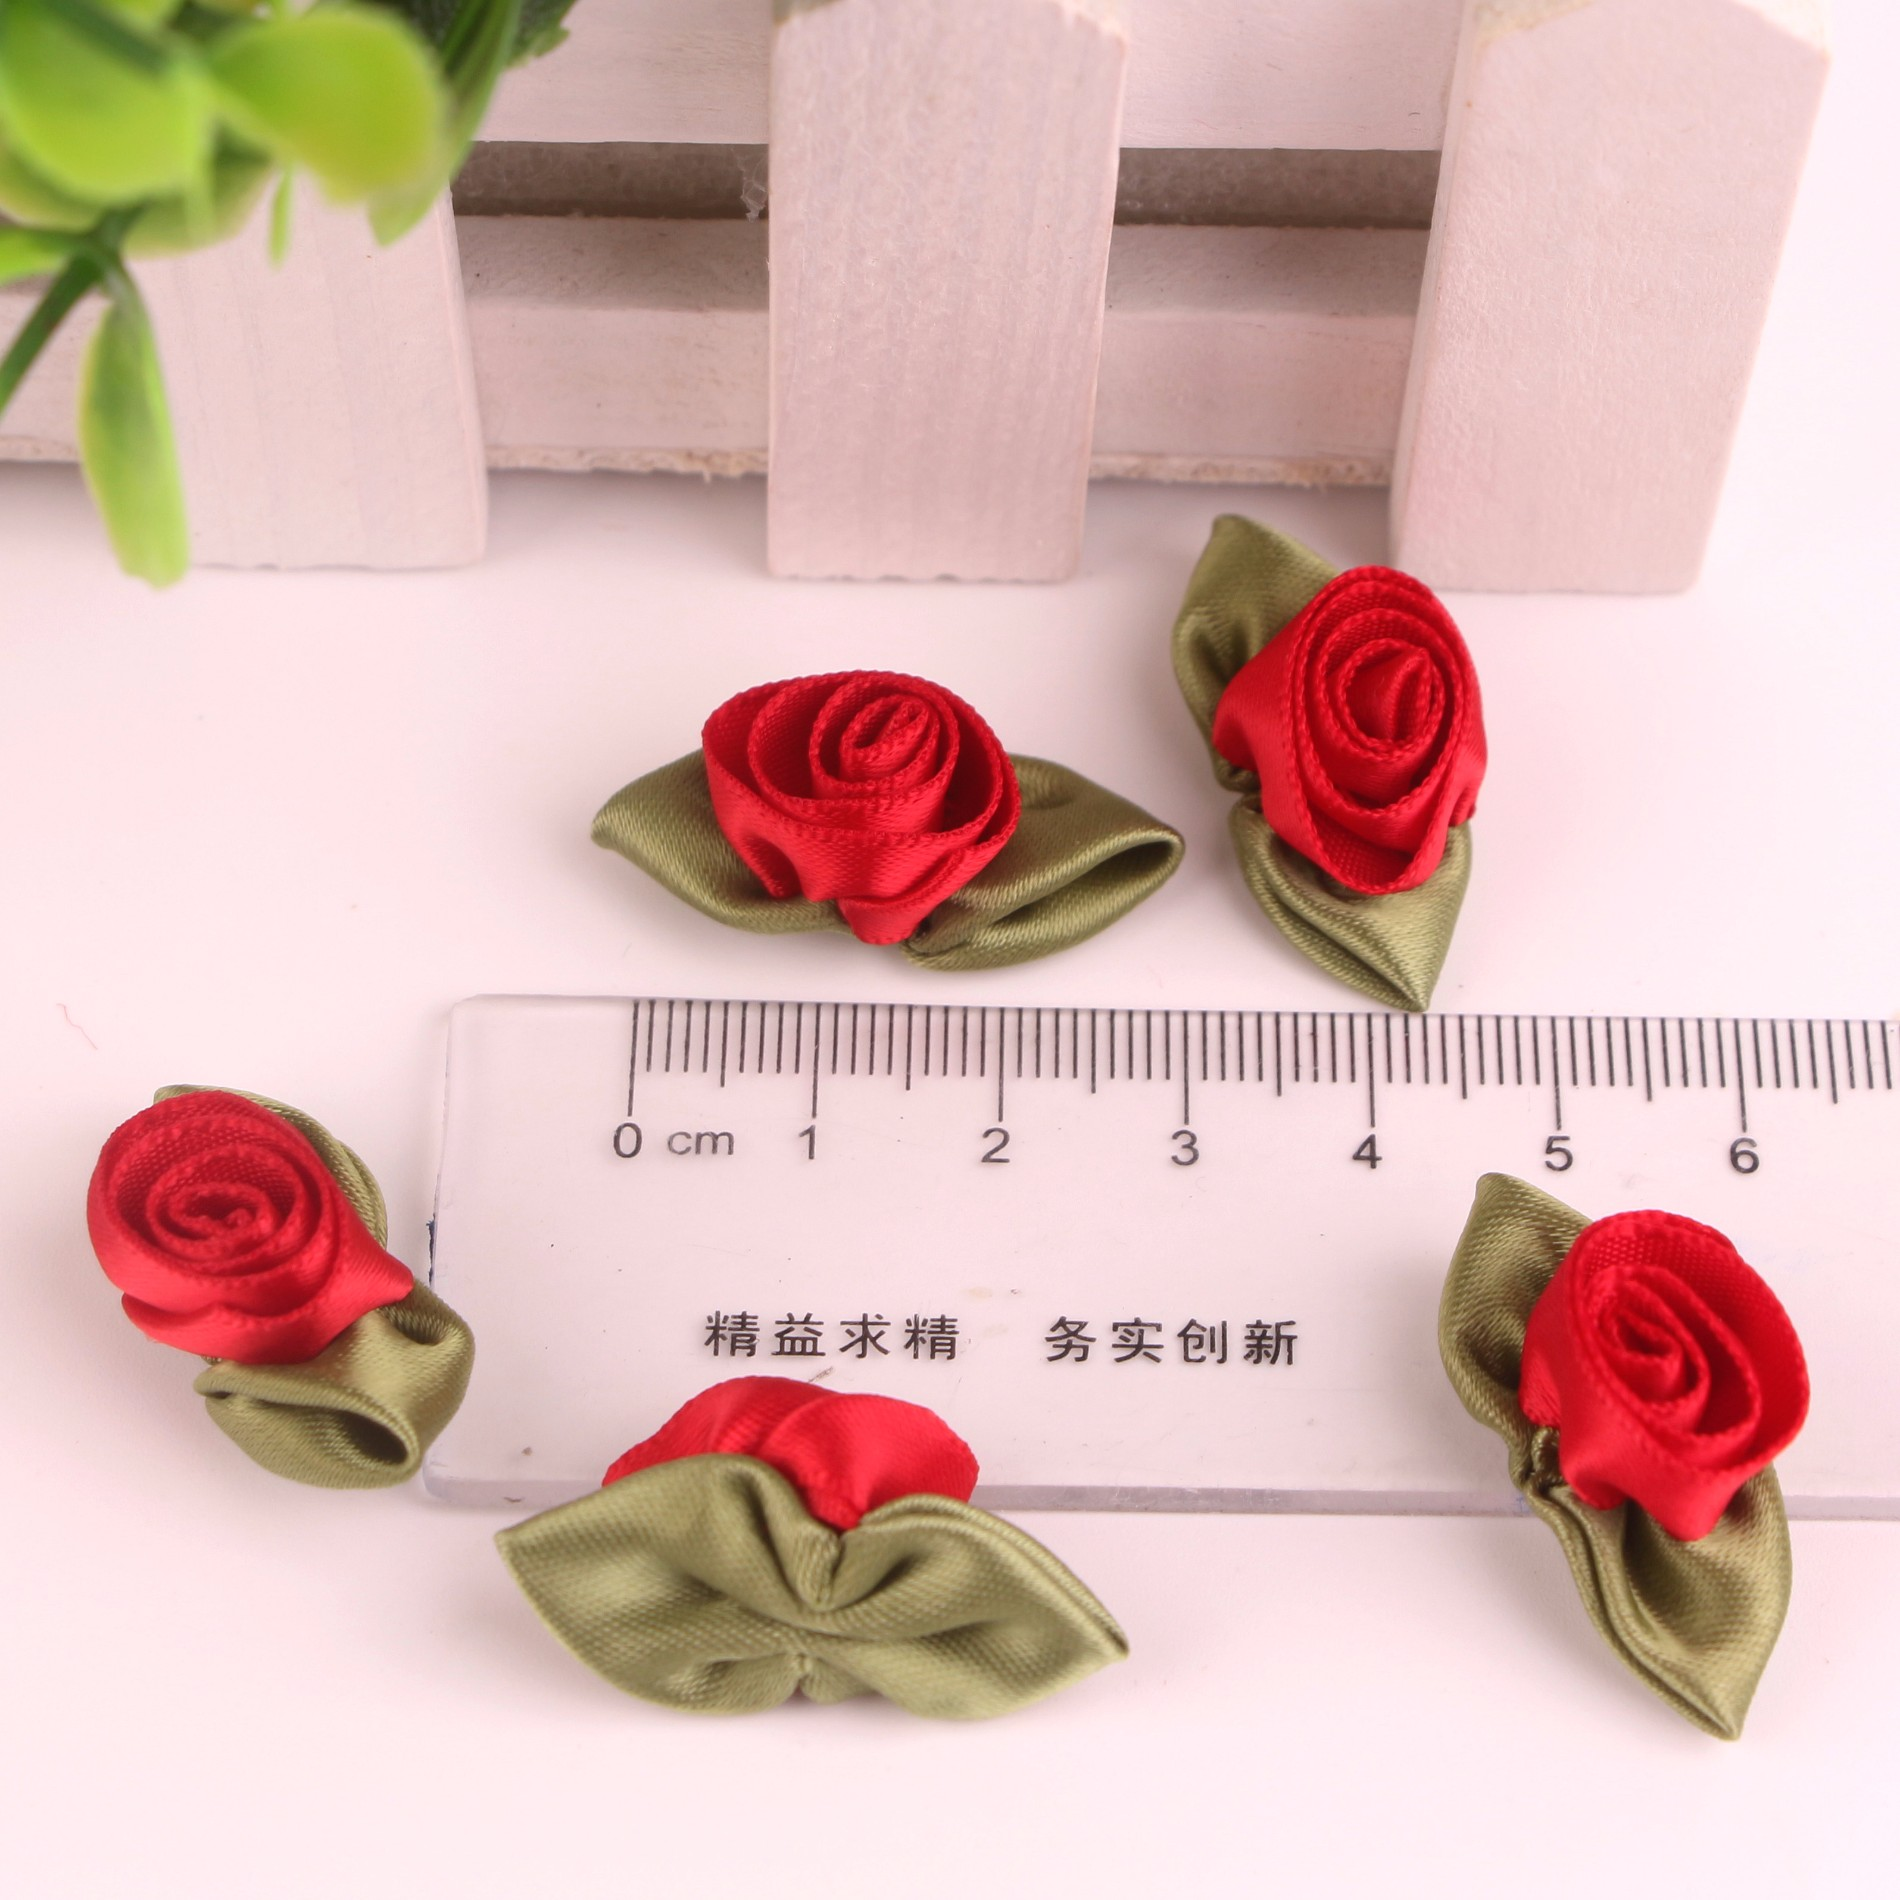 Custom mini ribbon bows flowers for women underwear decoration in stock Manufacturers, Custom mini ribbon bows flowers for women underwear decoration in stock Factory, Supply Custom mini ribbon bows flowers for women underwear decoration in stock